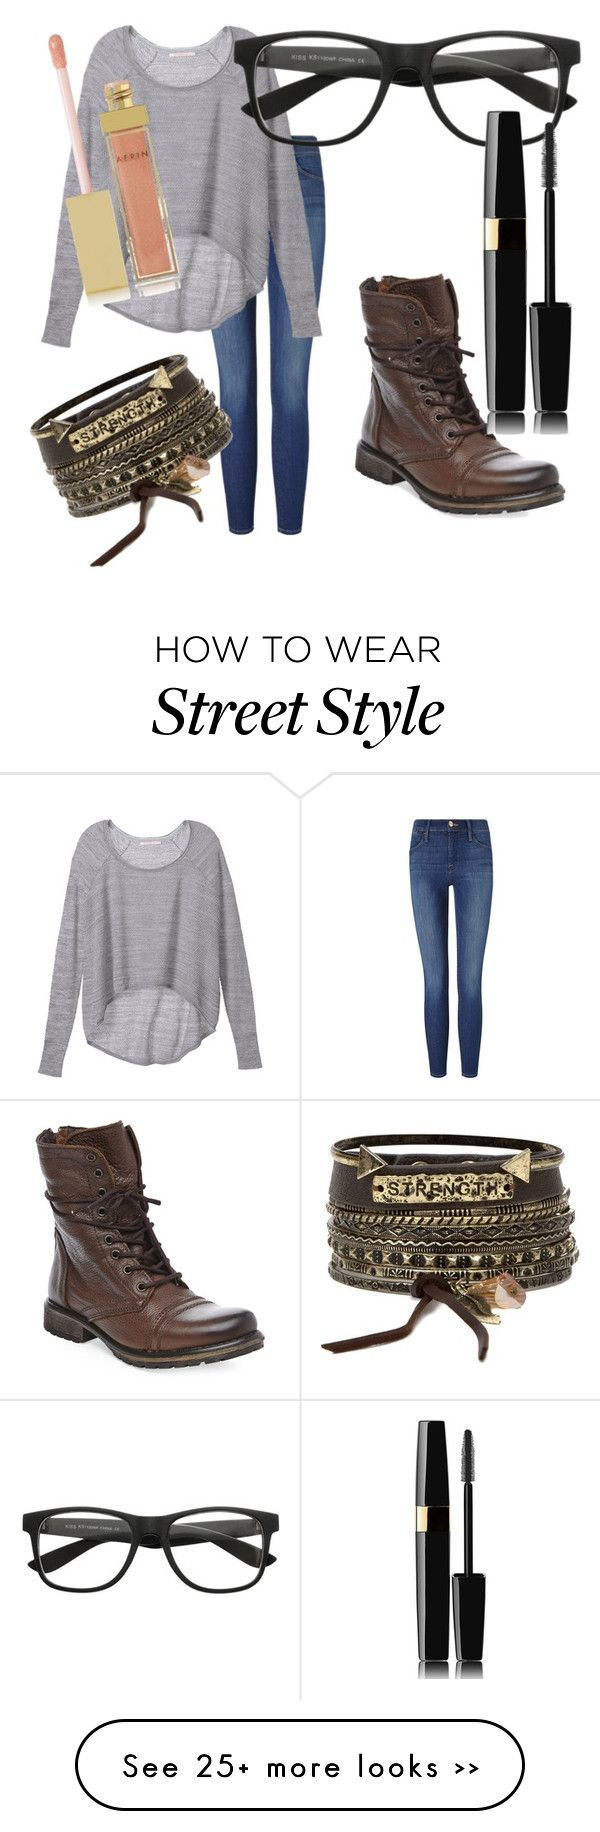 """""""You and me are golden"""" by da-muzykgirl on Polyvore featuring Frame Denim, Victoria's Secret, Steve Madden, BKE and AERIN"""